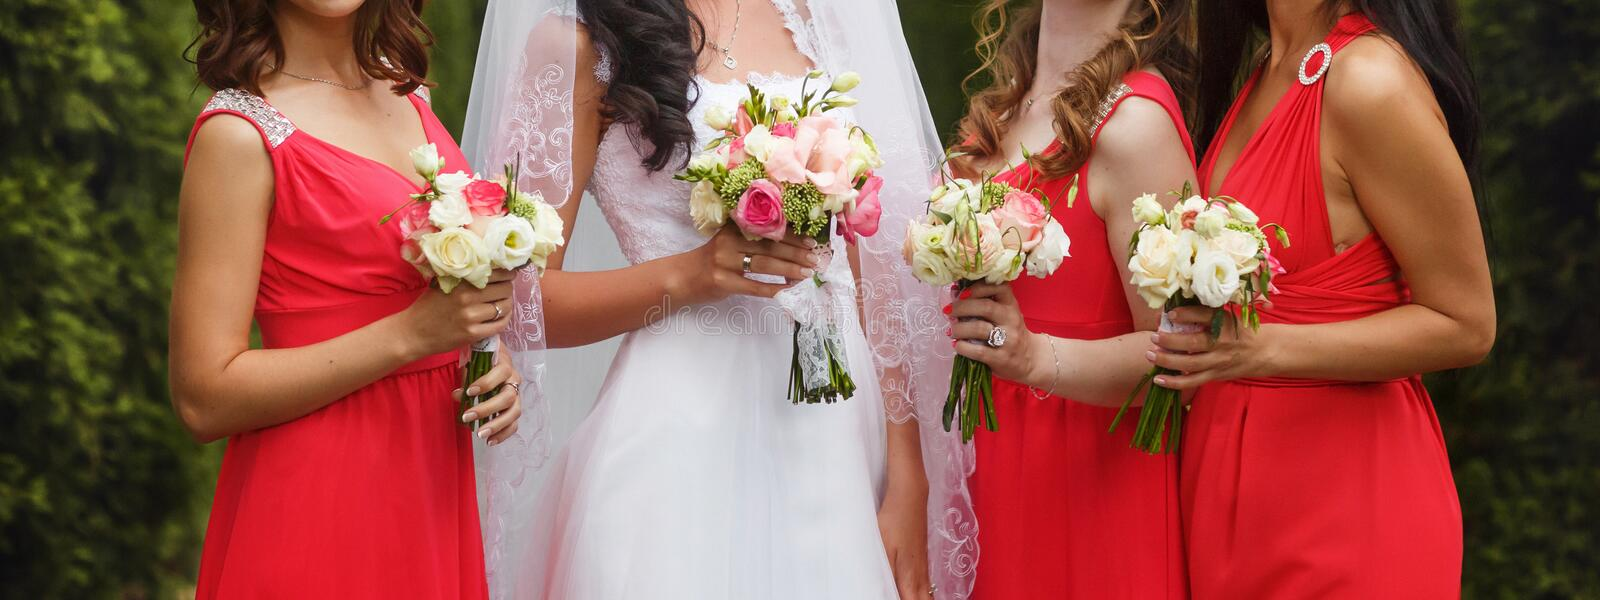 Bride poses with bridesmaids in pink dresses royalty free stock photography